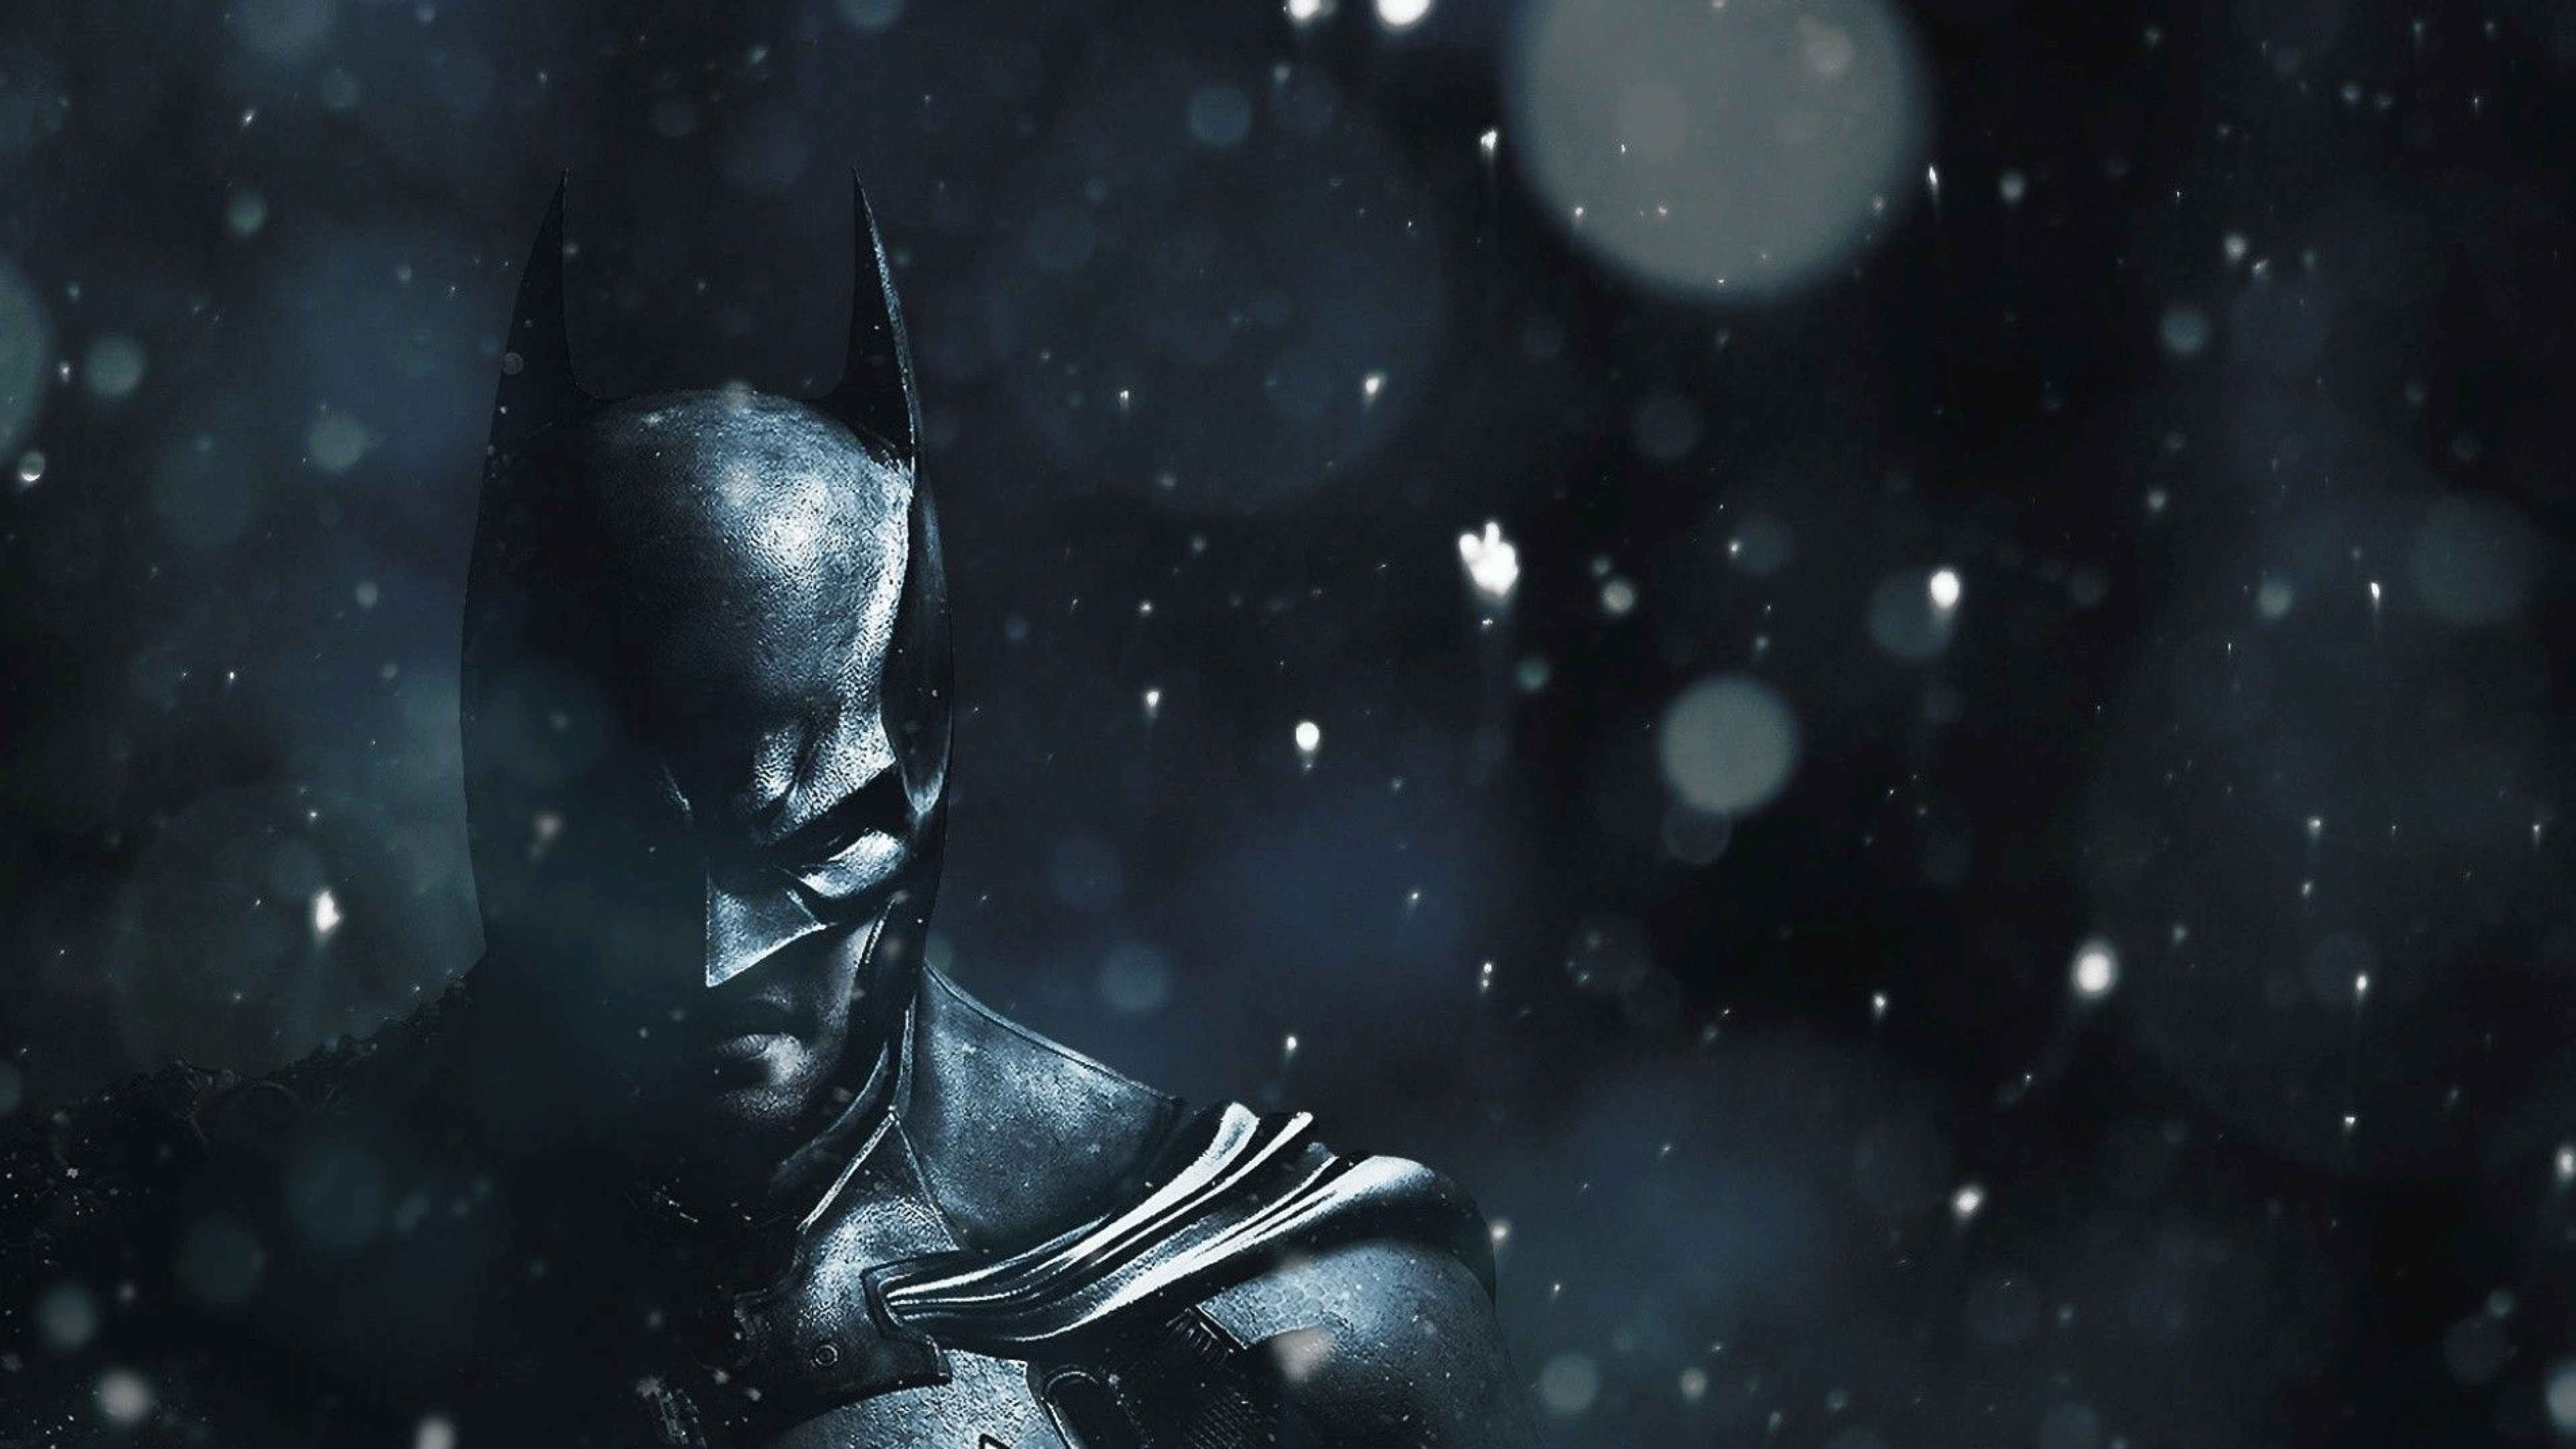 3840x2160 Batman 4K Ultra HD Wallpaper